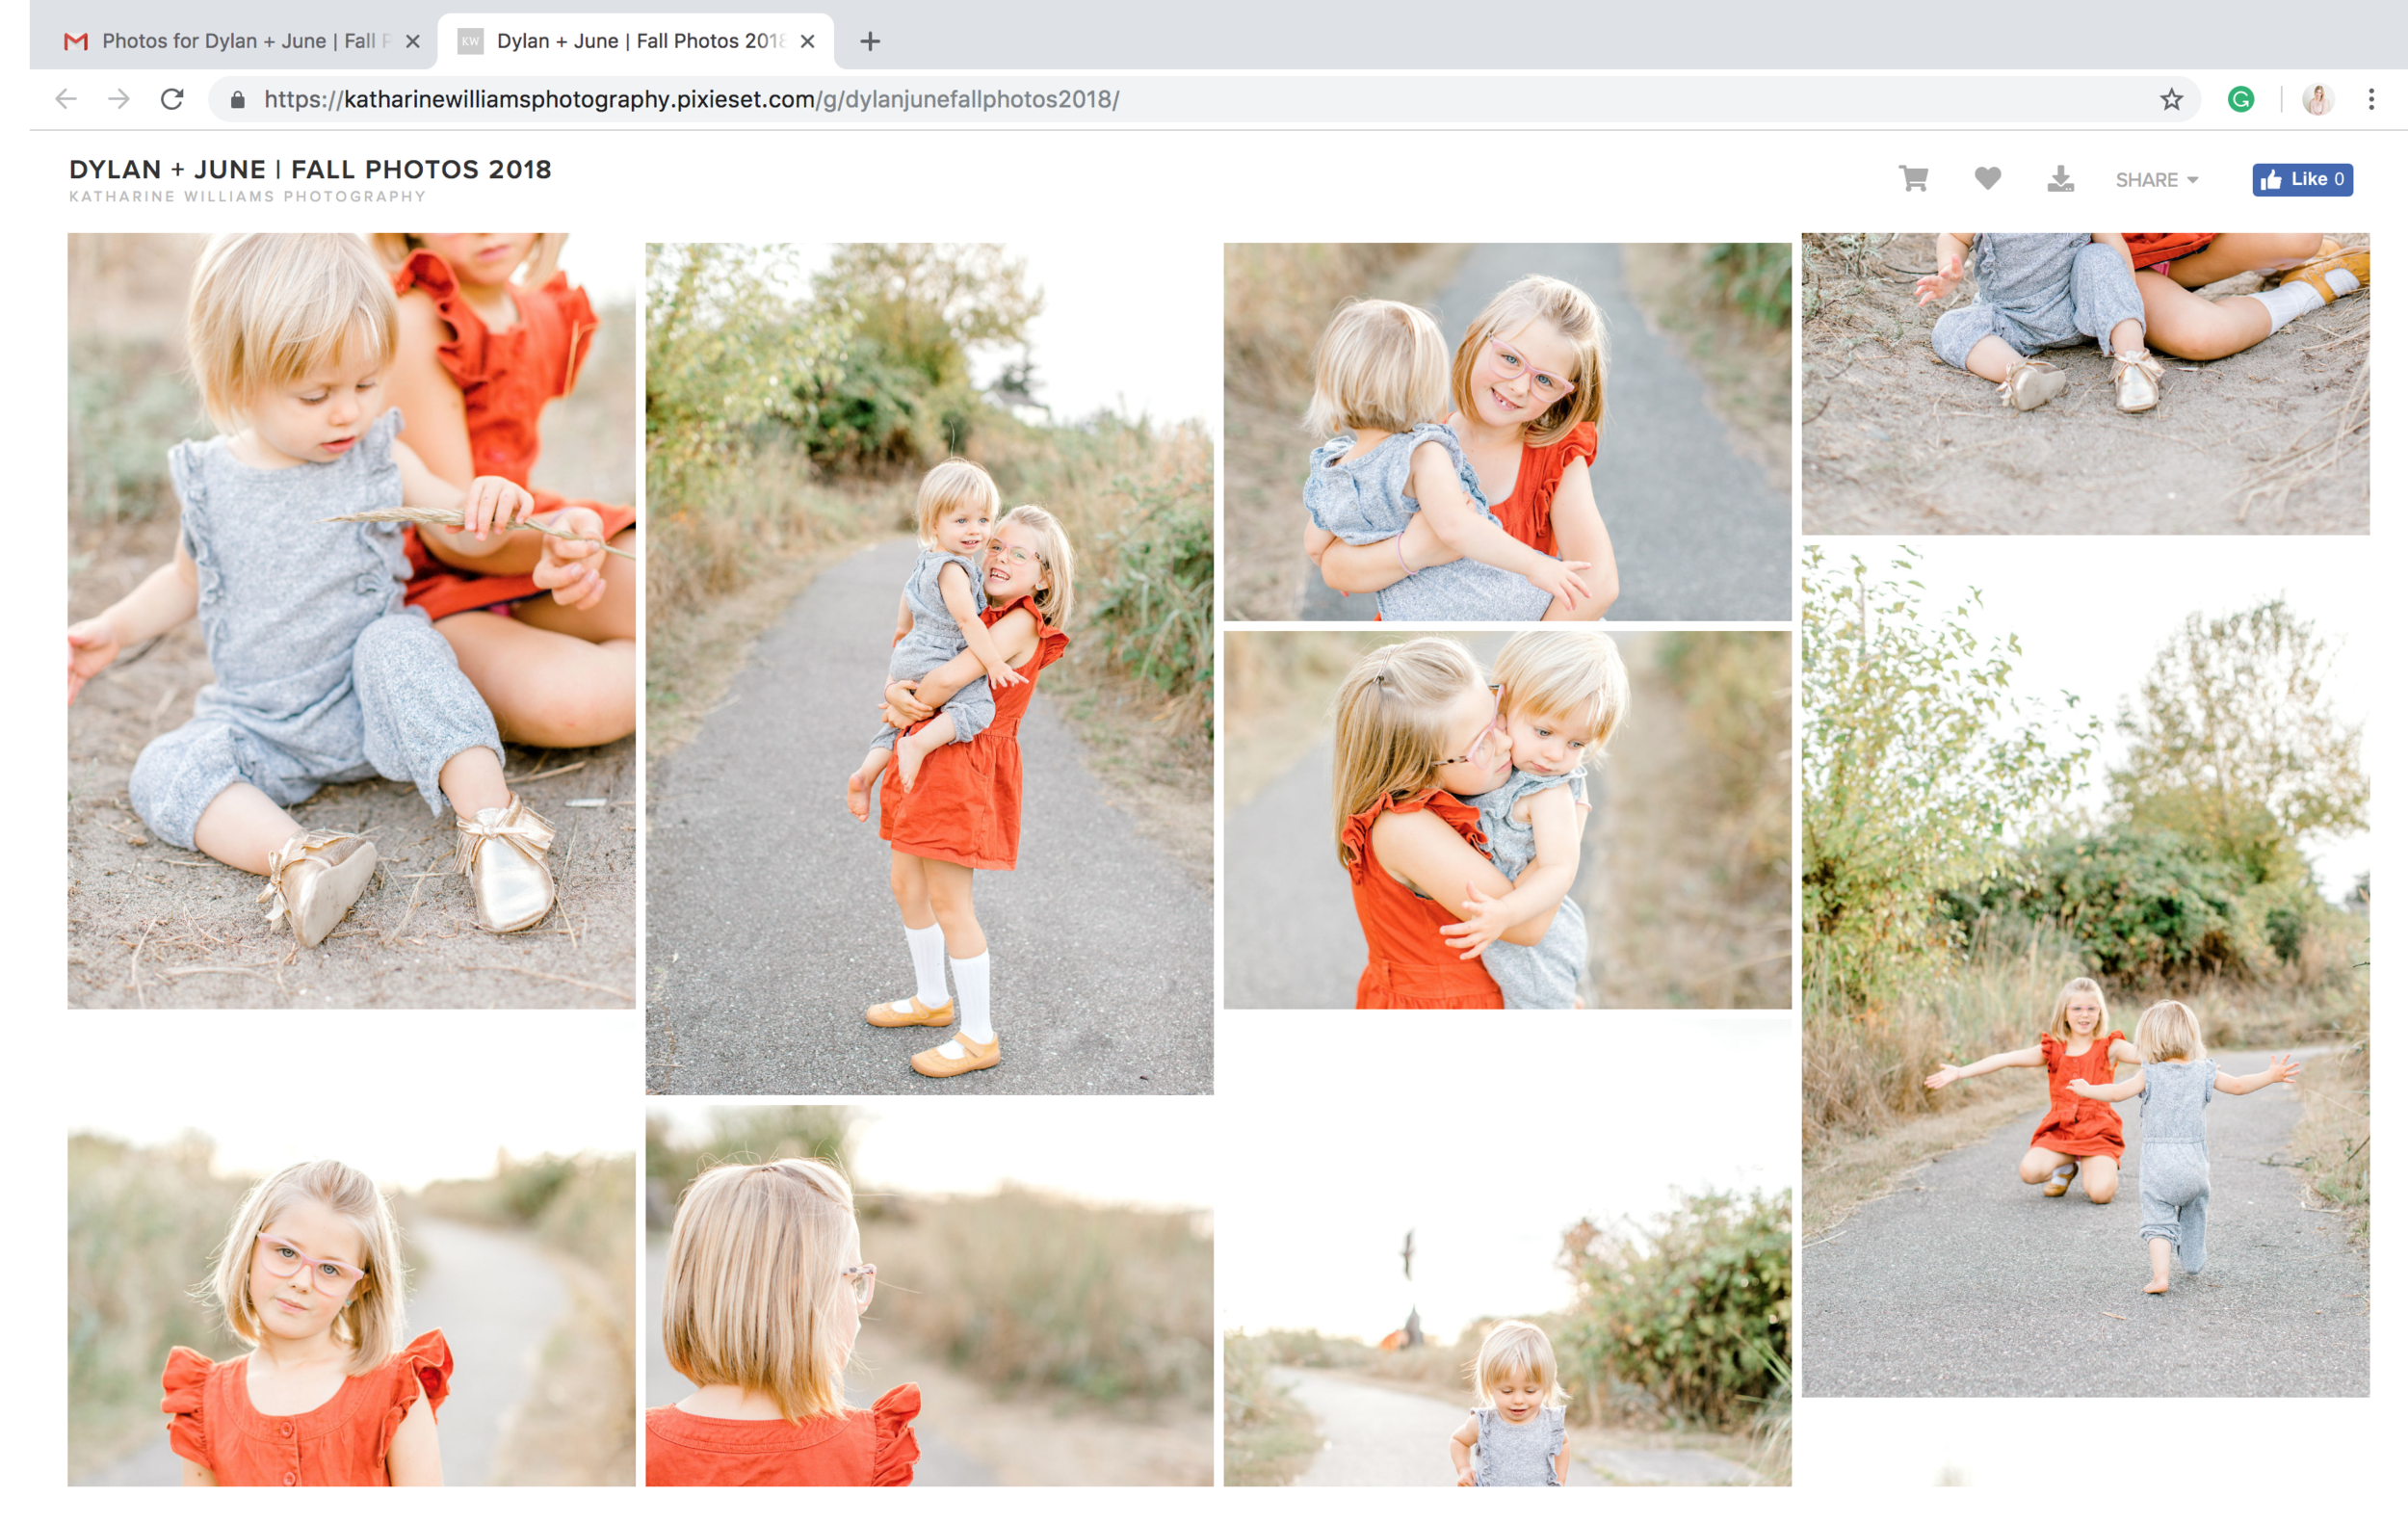 guide to downloading your images from Pixieset